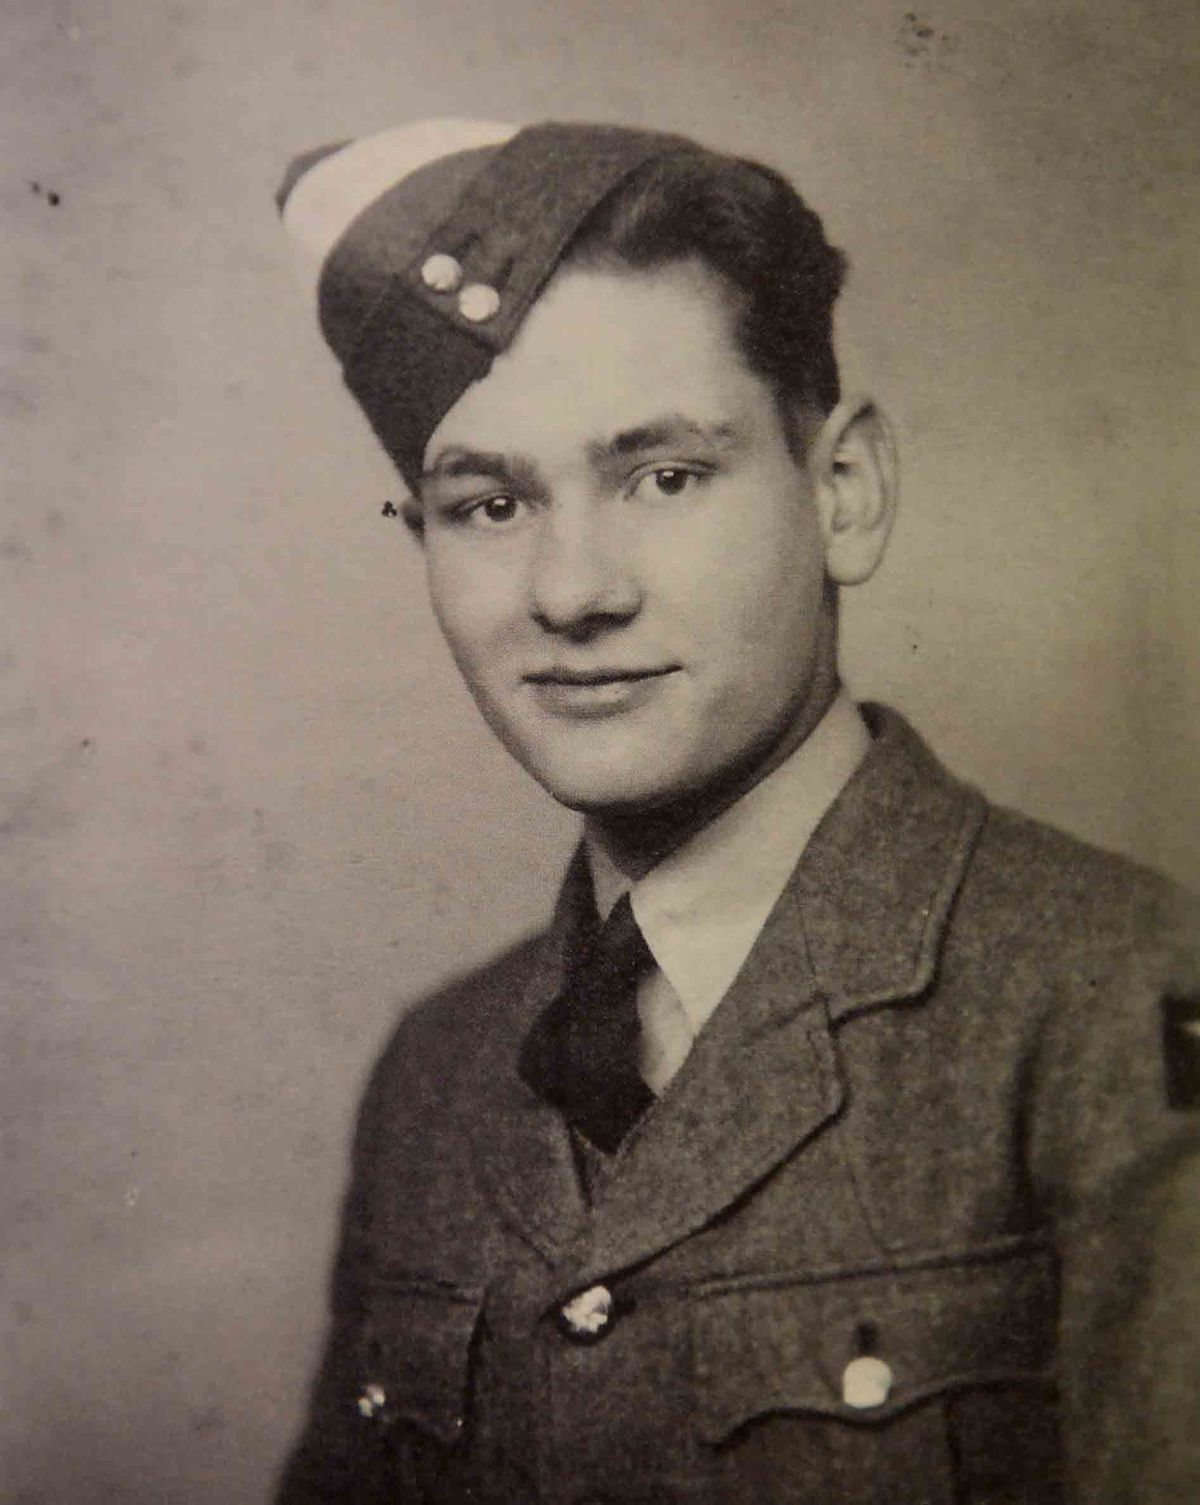 Ron Tomlin in his RAF days